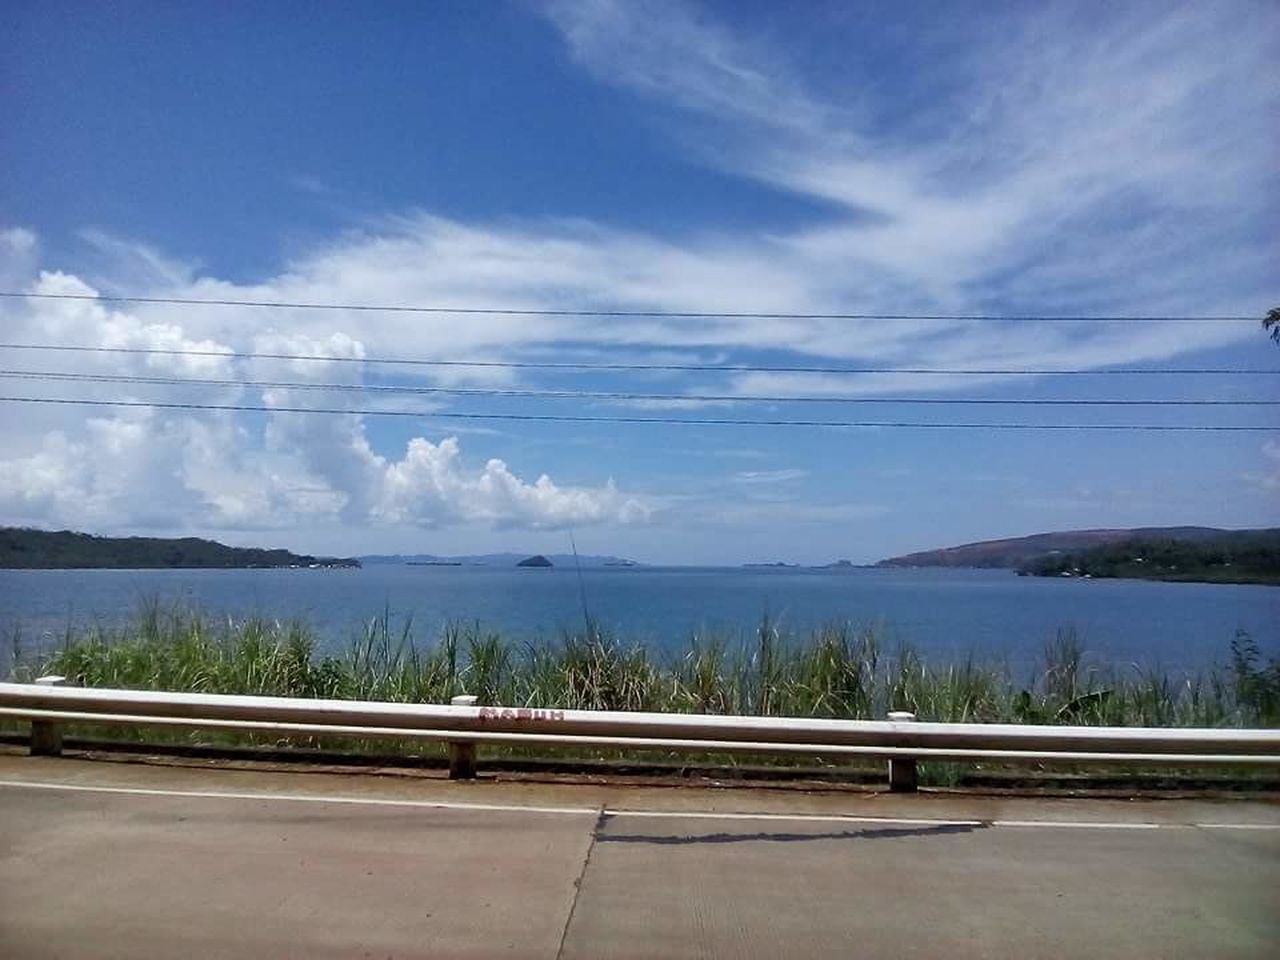 sky, scenics, cloud - sky, nature, tranquility, beauty in nature, day, water, no people, tranquil scene, outdoors, transportation, road, mountain, sea, tree